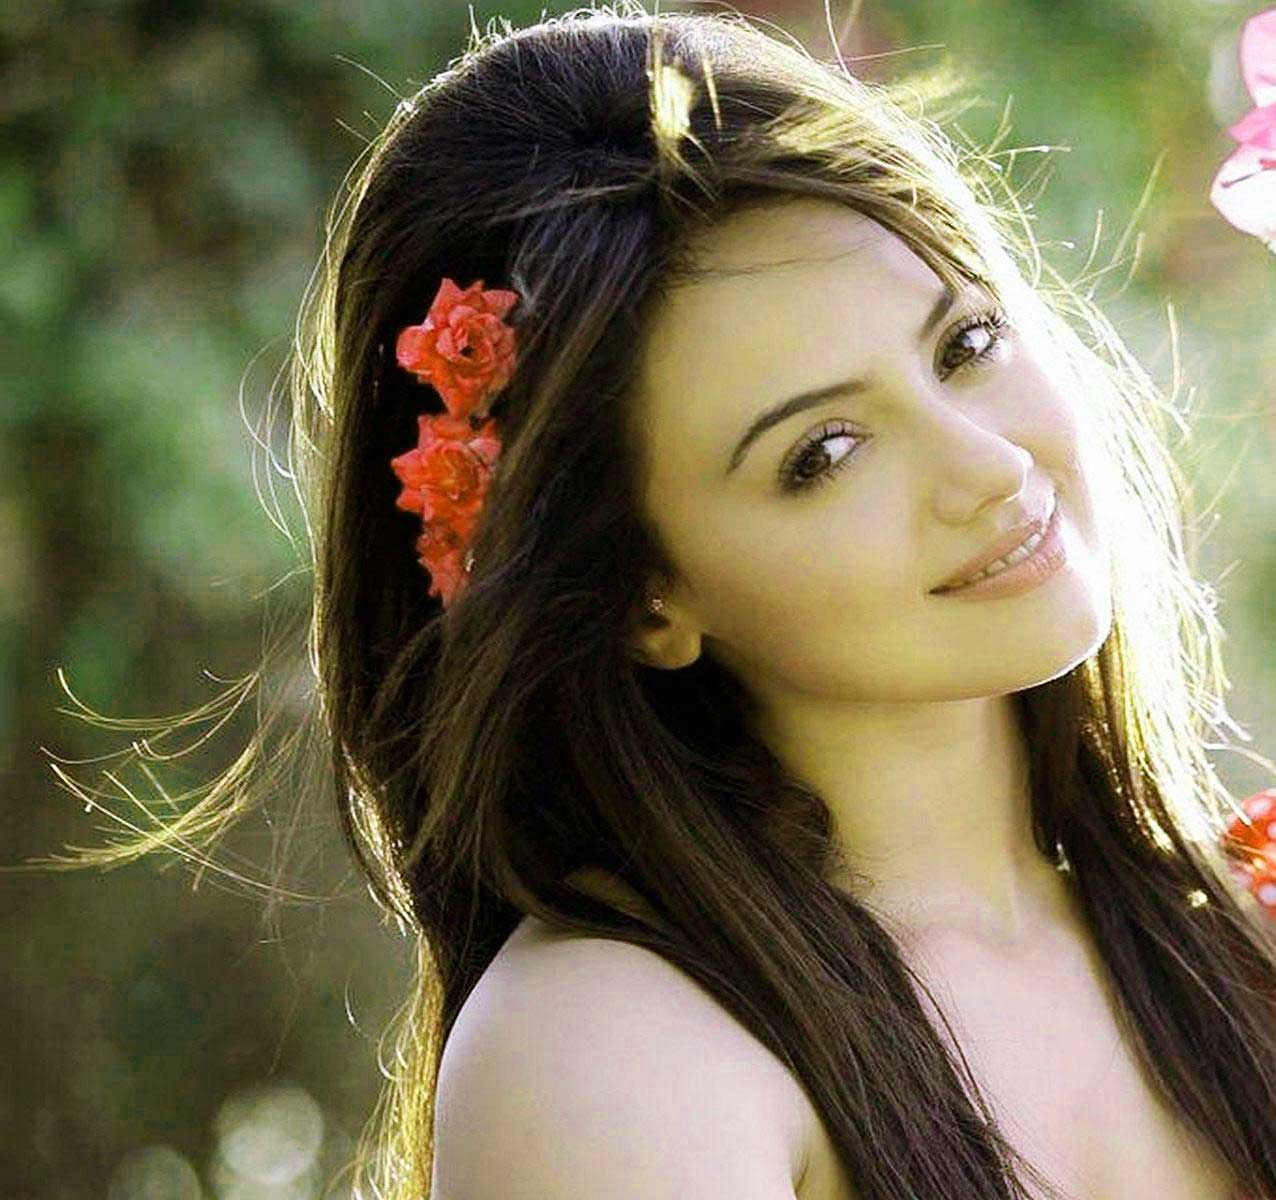 Free New Best very cute beautiful girl images Wallpaper Download